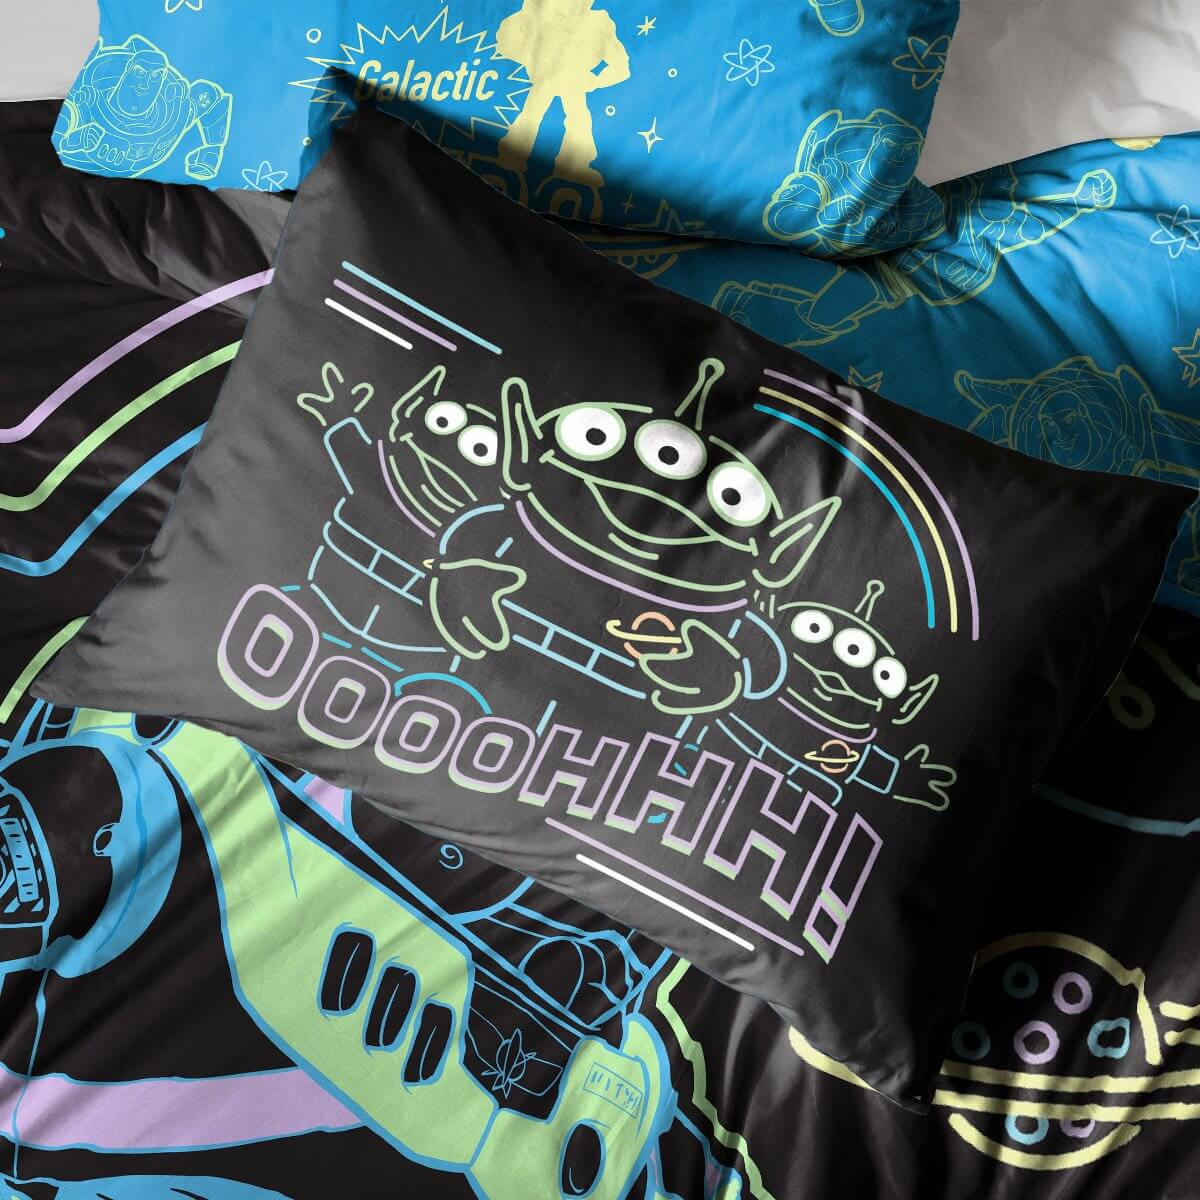 Toy Story Intergalactic Bedding - Reversible Duvet Cover and Pillowcase Set